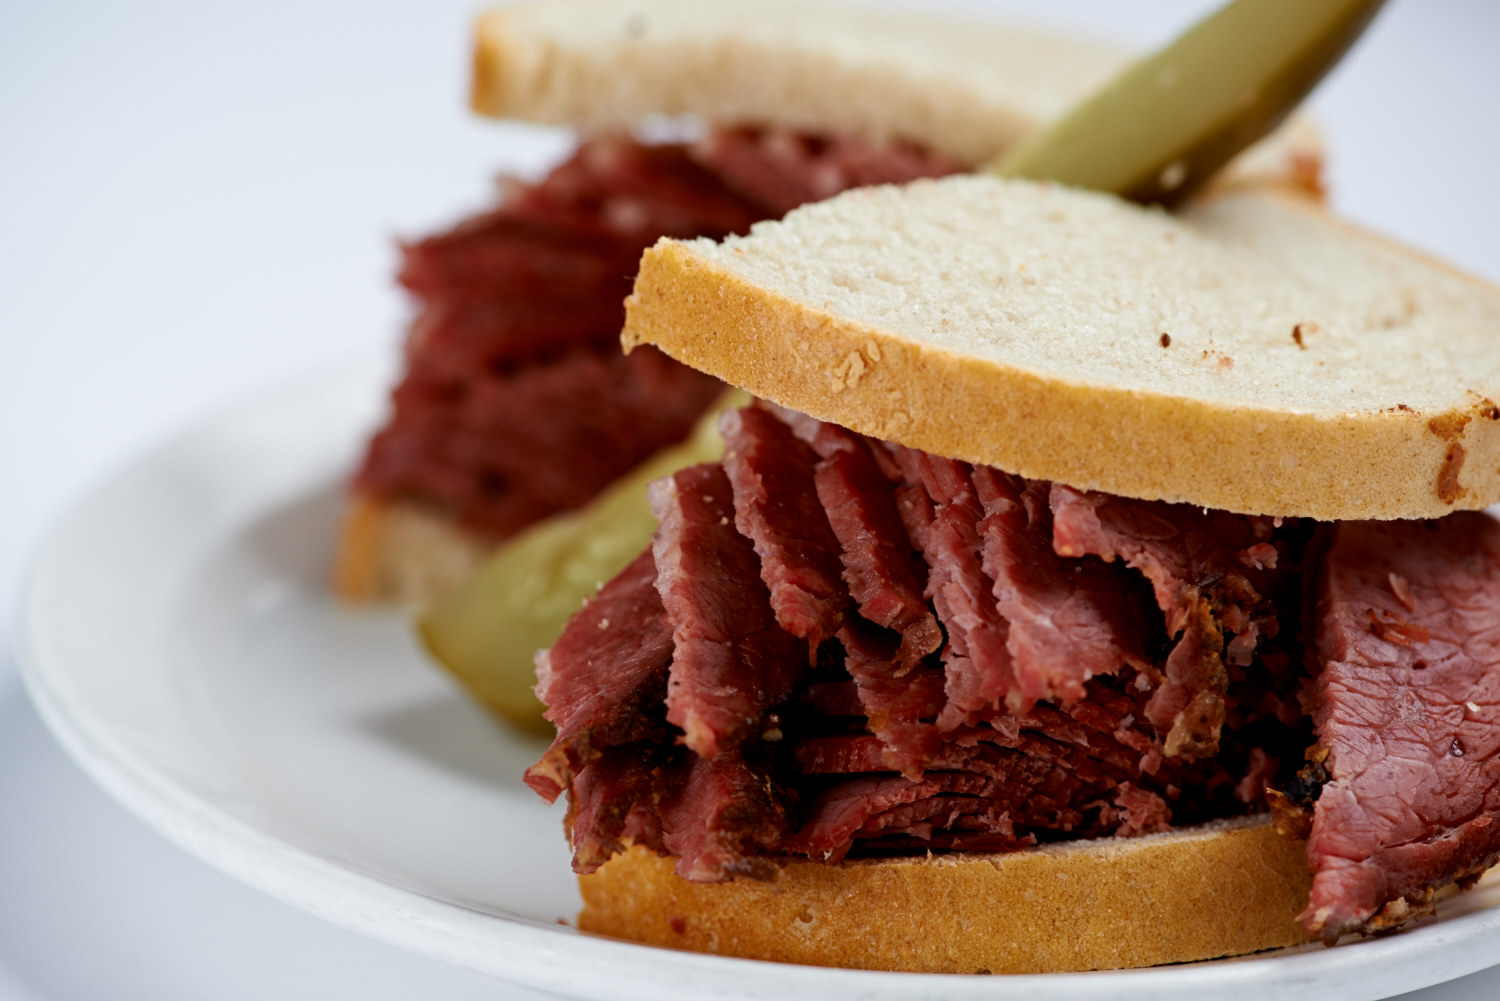 Smoked Meat with Pickle